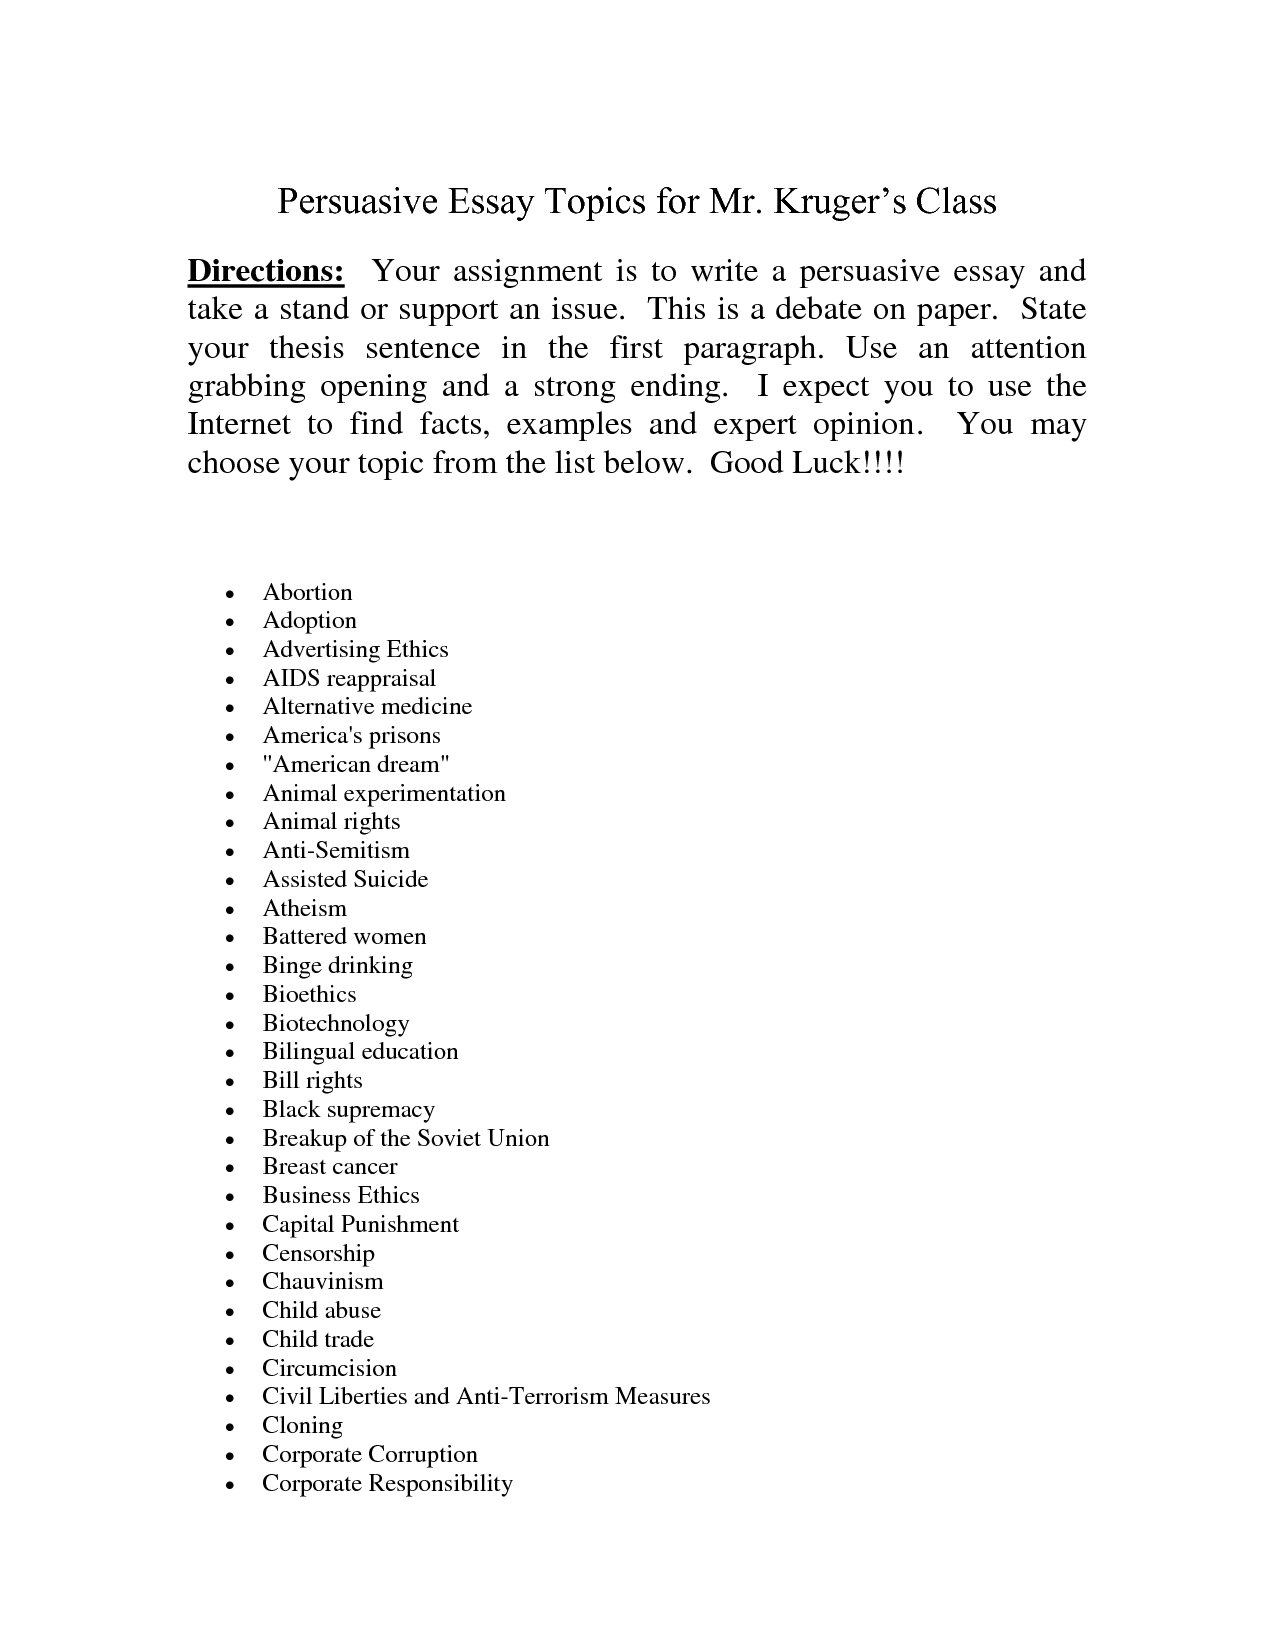 10 Stunning Ideas For An Argumentative Essay essay topics on women argumentative essay topic ideas co college 2021